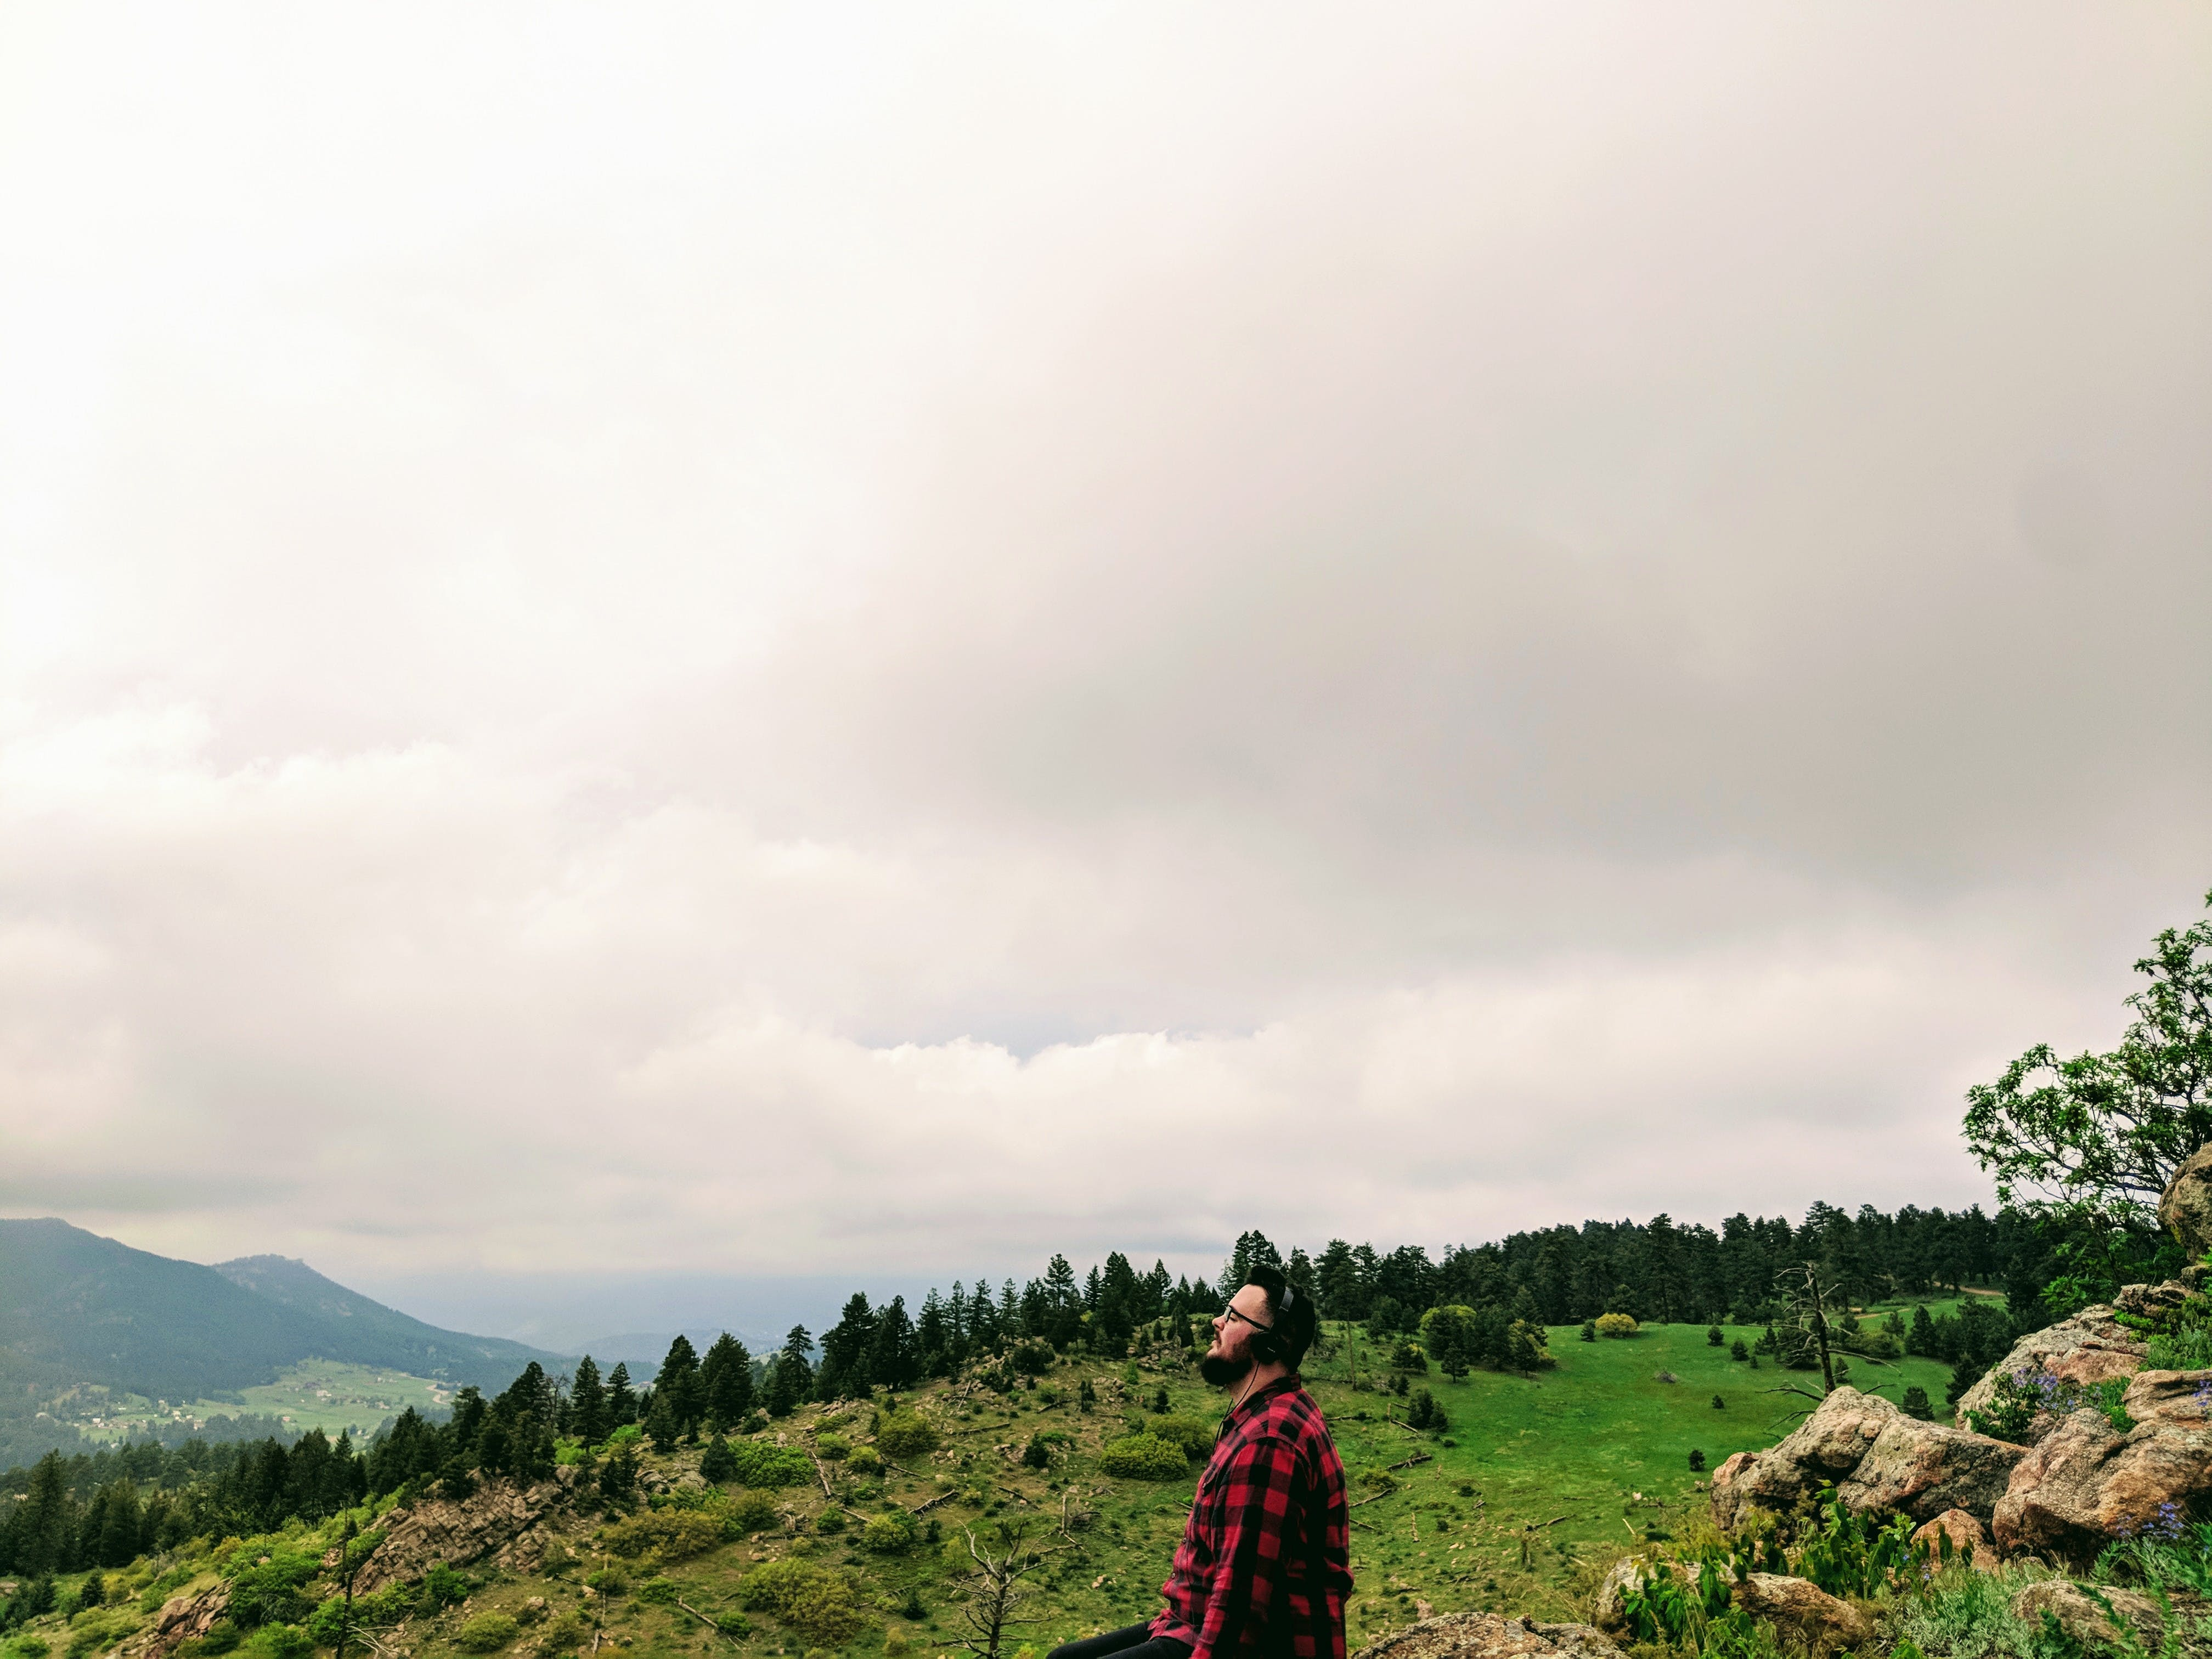 Man Wearing Red and Black Plaid Shirt Standing on Green Grass Hill